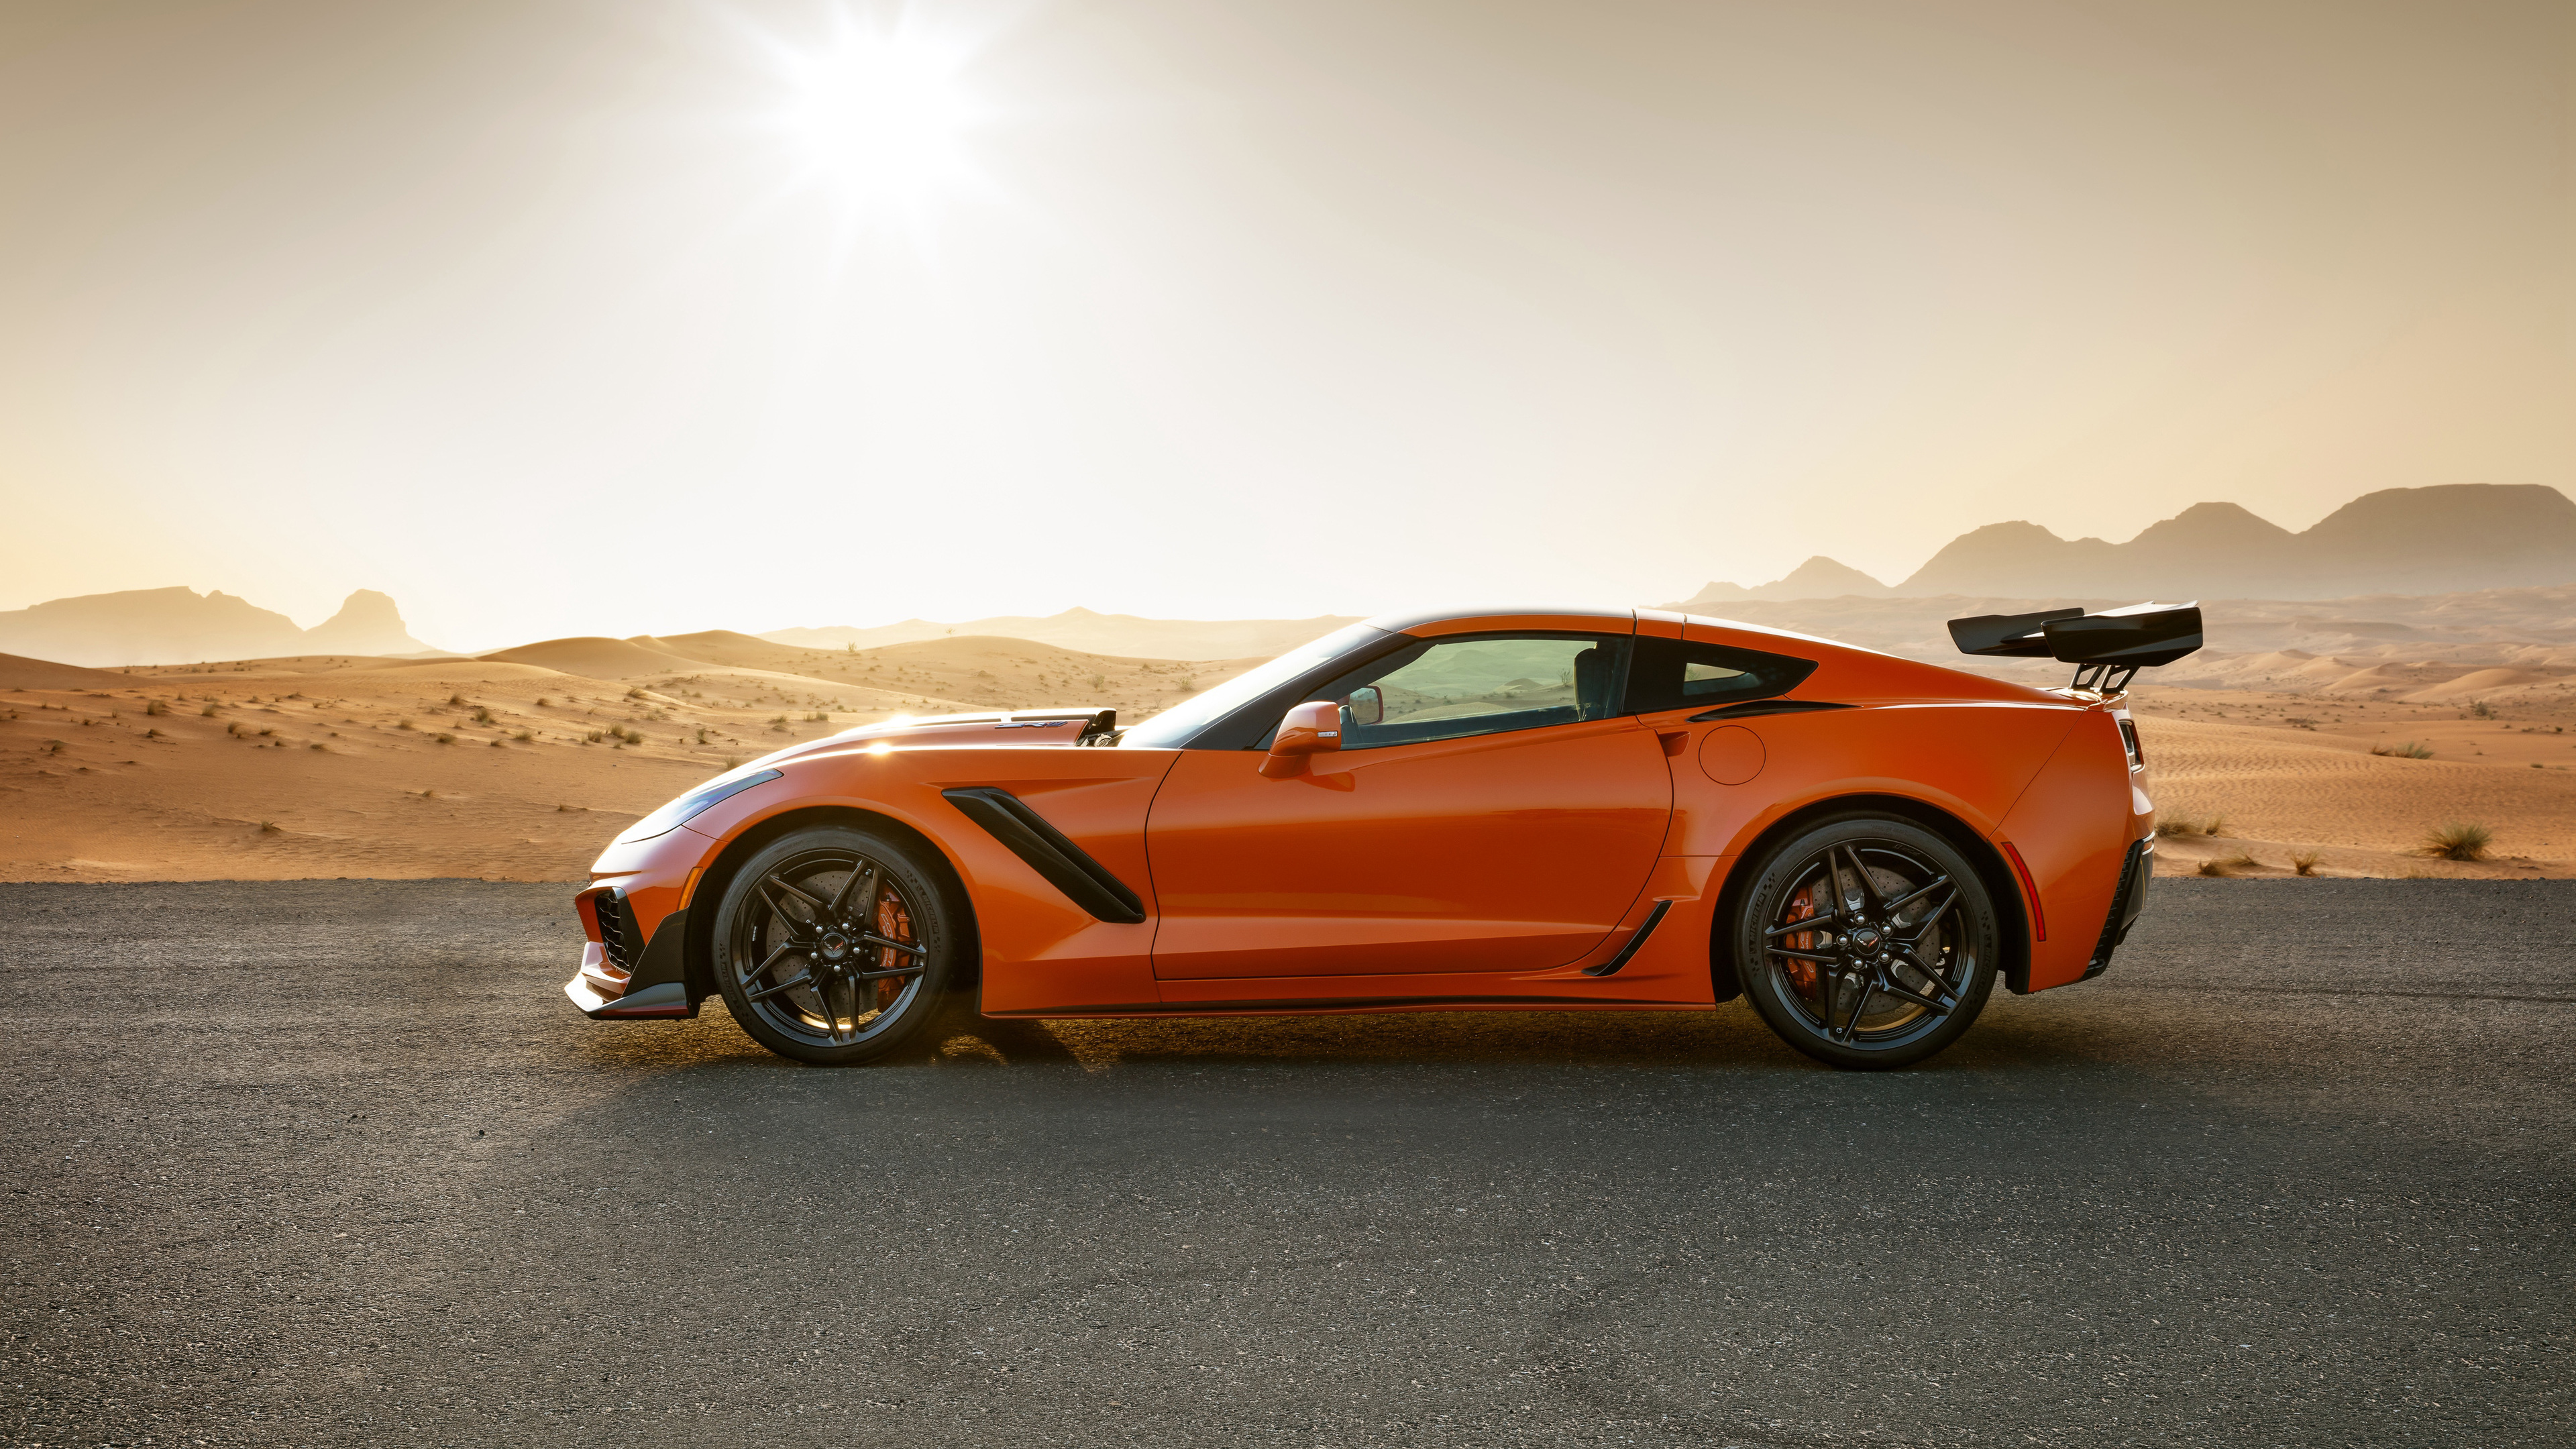 chevrolet corvette zr1 2019 side view 1539111692 - Chevrolet Corvette ZR1 2019 Side View - hd-wallpapers, corvette wallpapers, chevrolet wallpapers, chevrolet corvette zr1 wallpapers, cars wallpapers, 4k-wallpapers, 2019 cars wallpapers